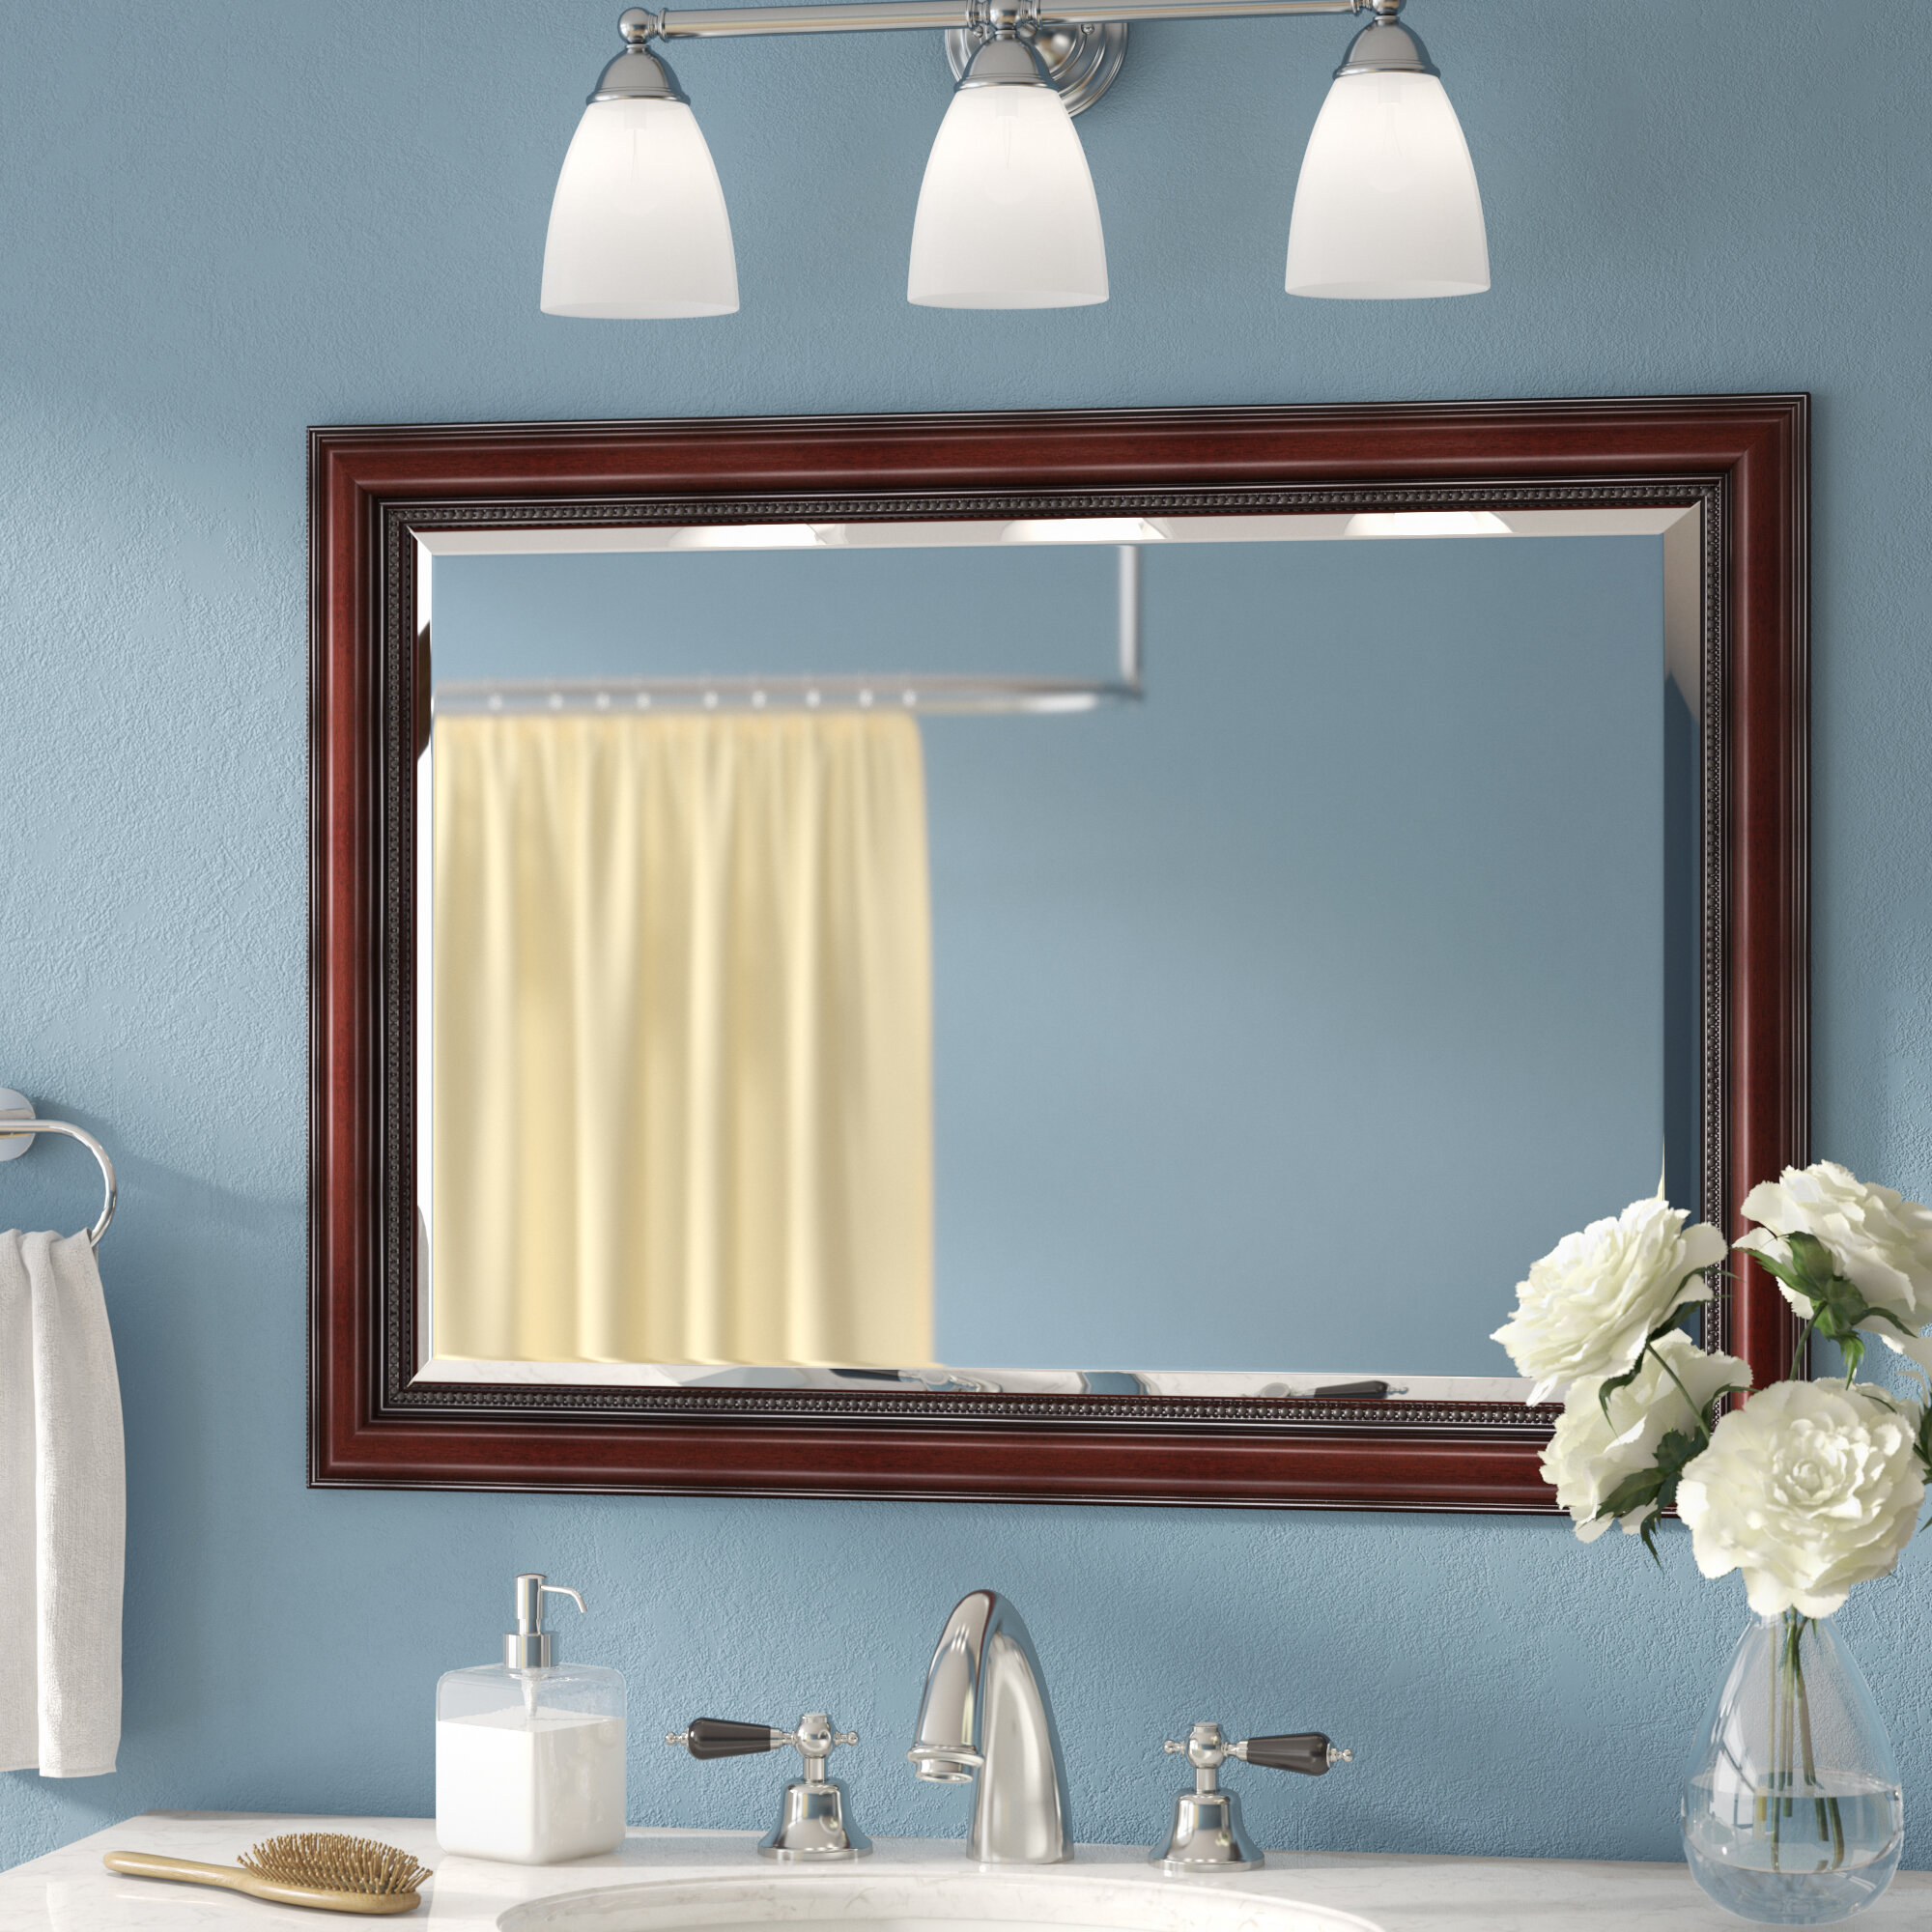 Three Posts Mitchem Traditional Cherry Bathroomvanity Wall Mirror